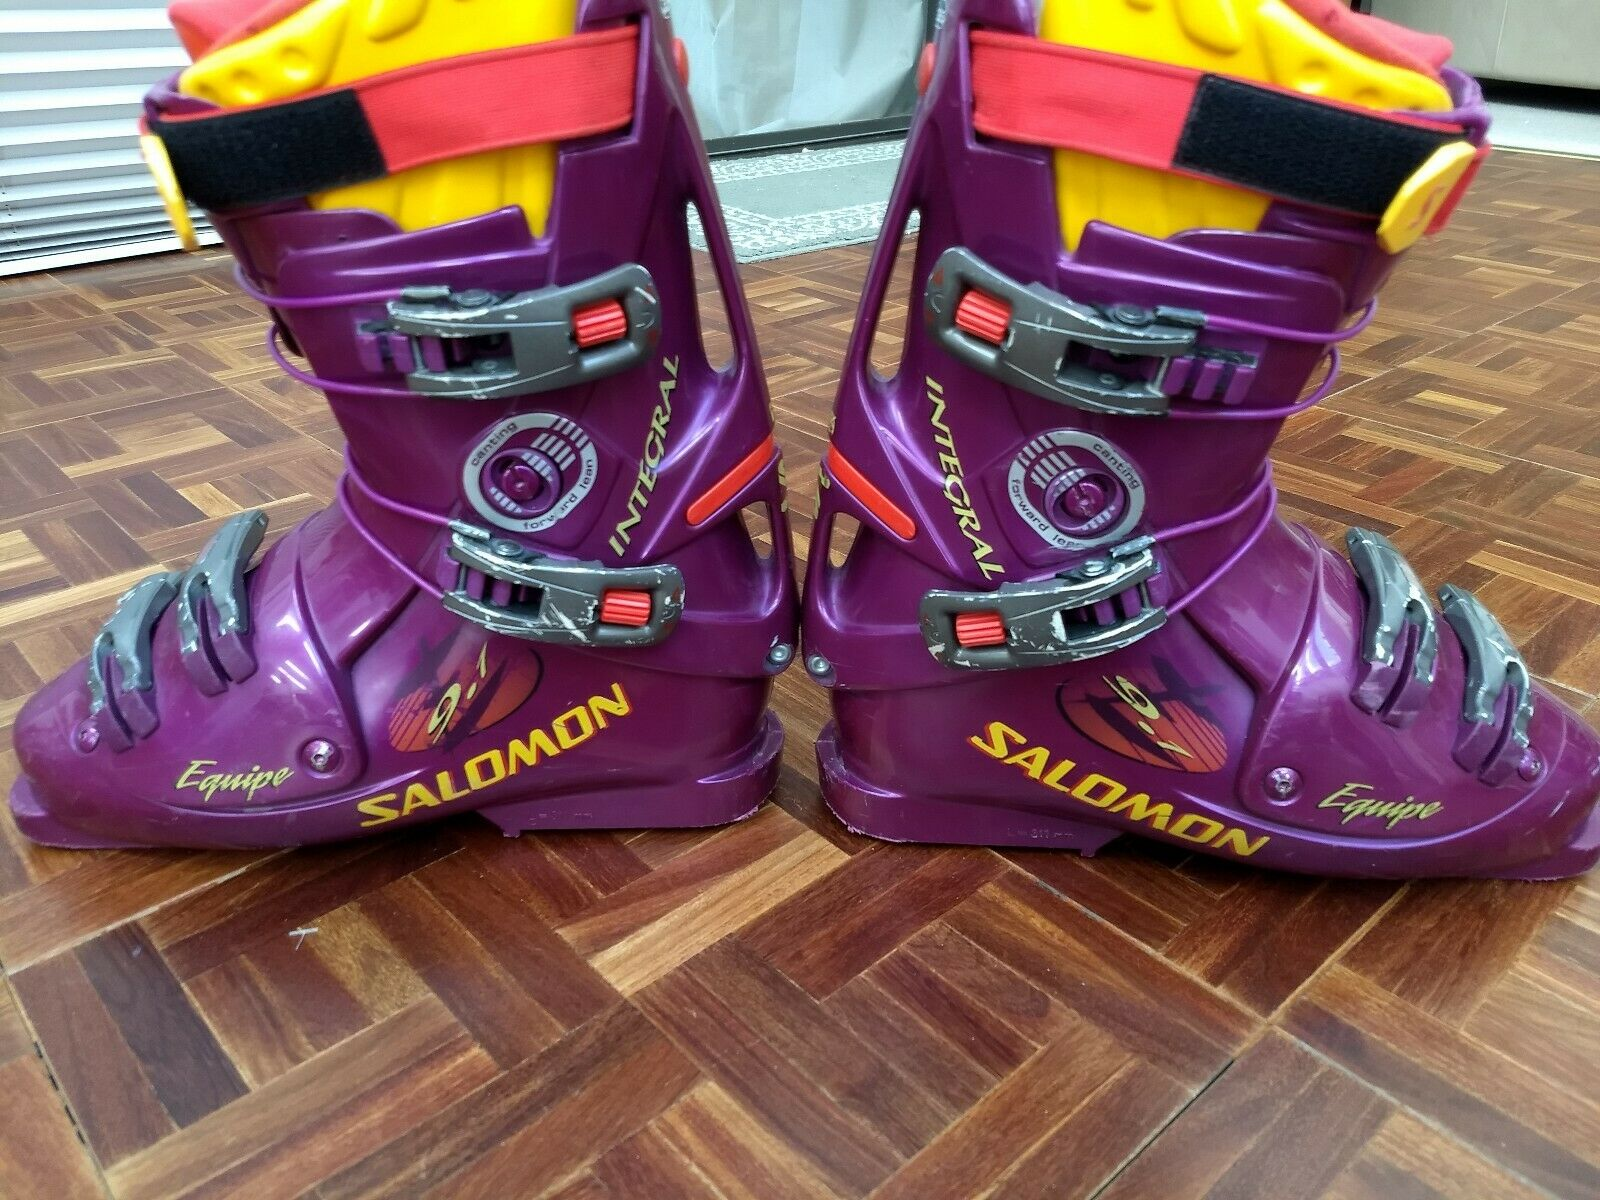 Salomon Integral Equipe 9.1 Ski Boots 26.5 Womens Size 9.5 Mens 8.5